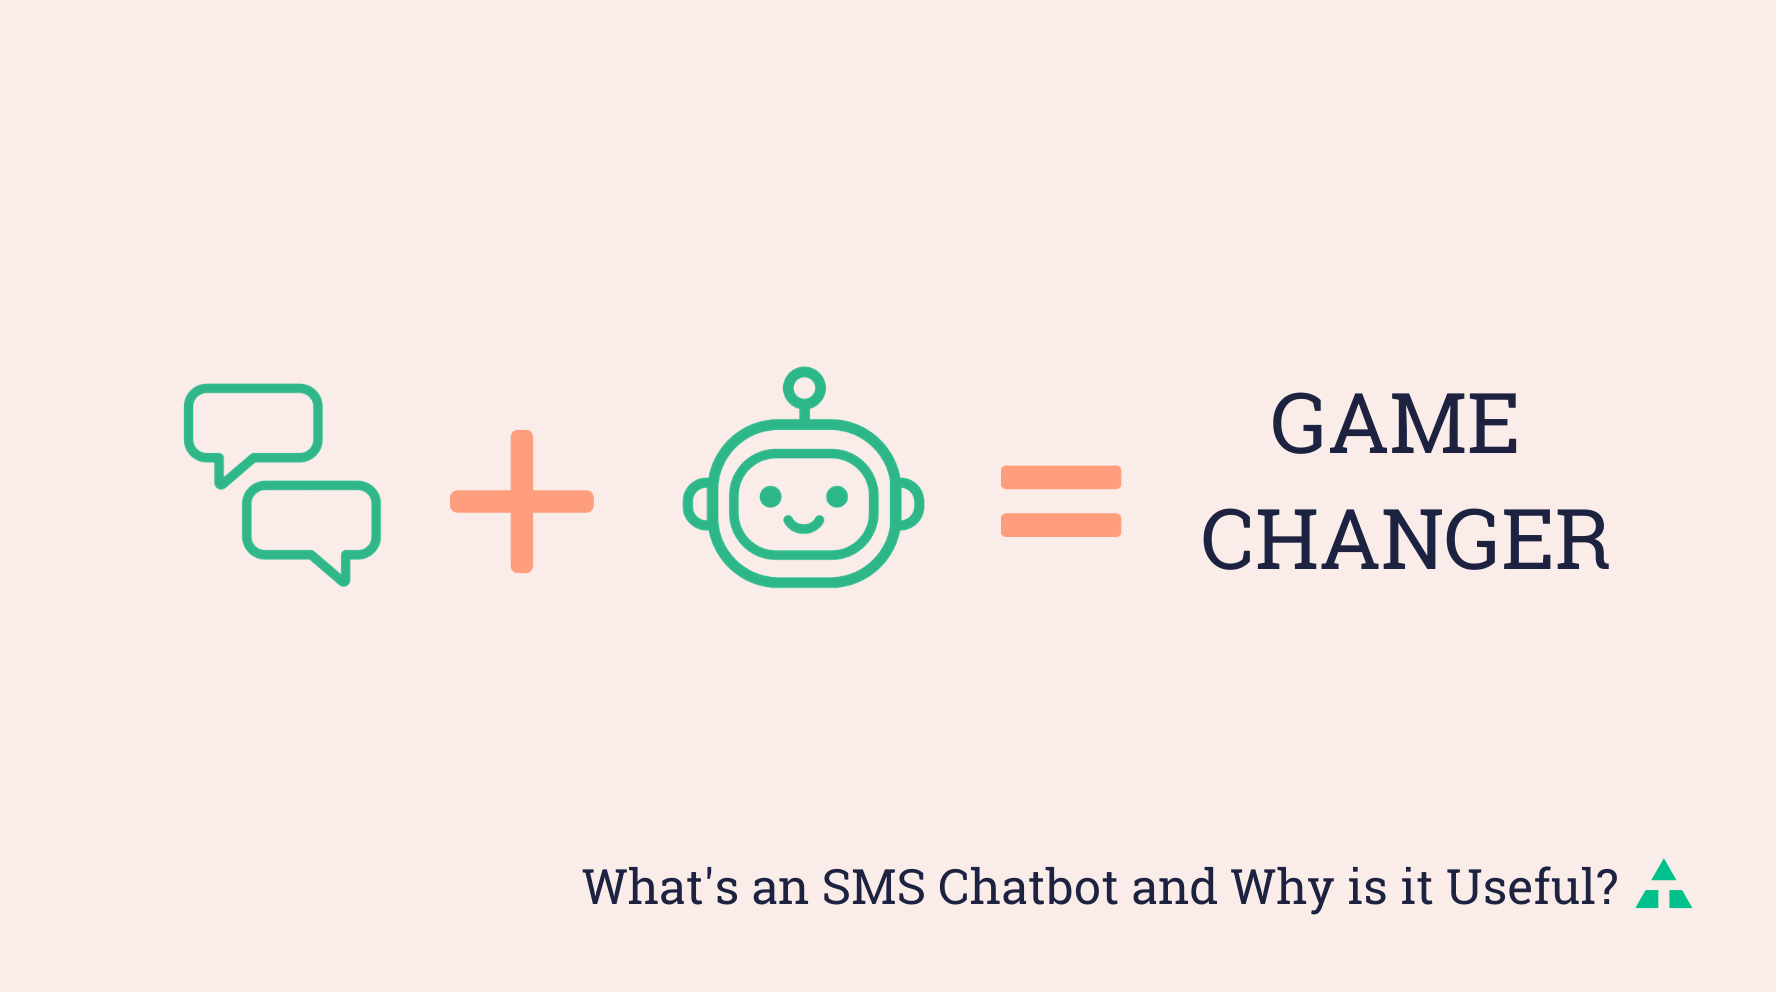 What's an SMS Chatbot and Why is it Useful?